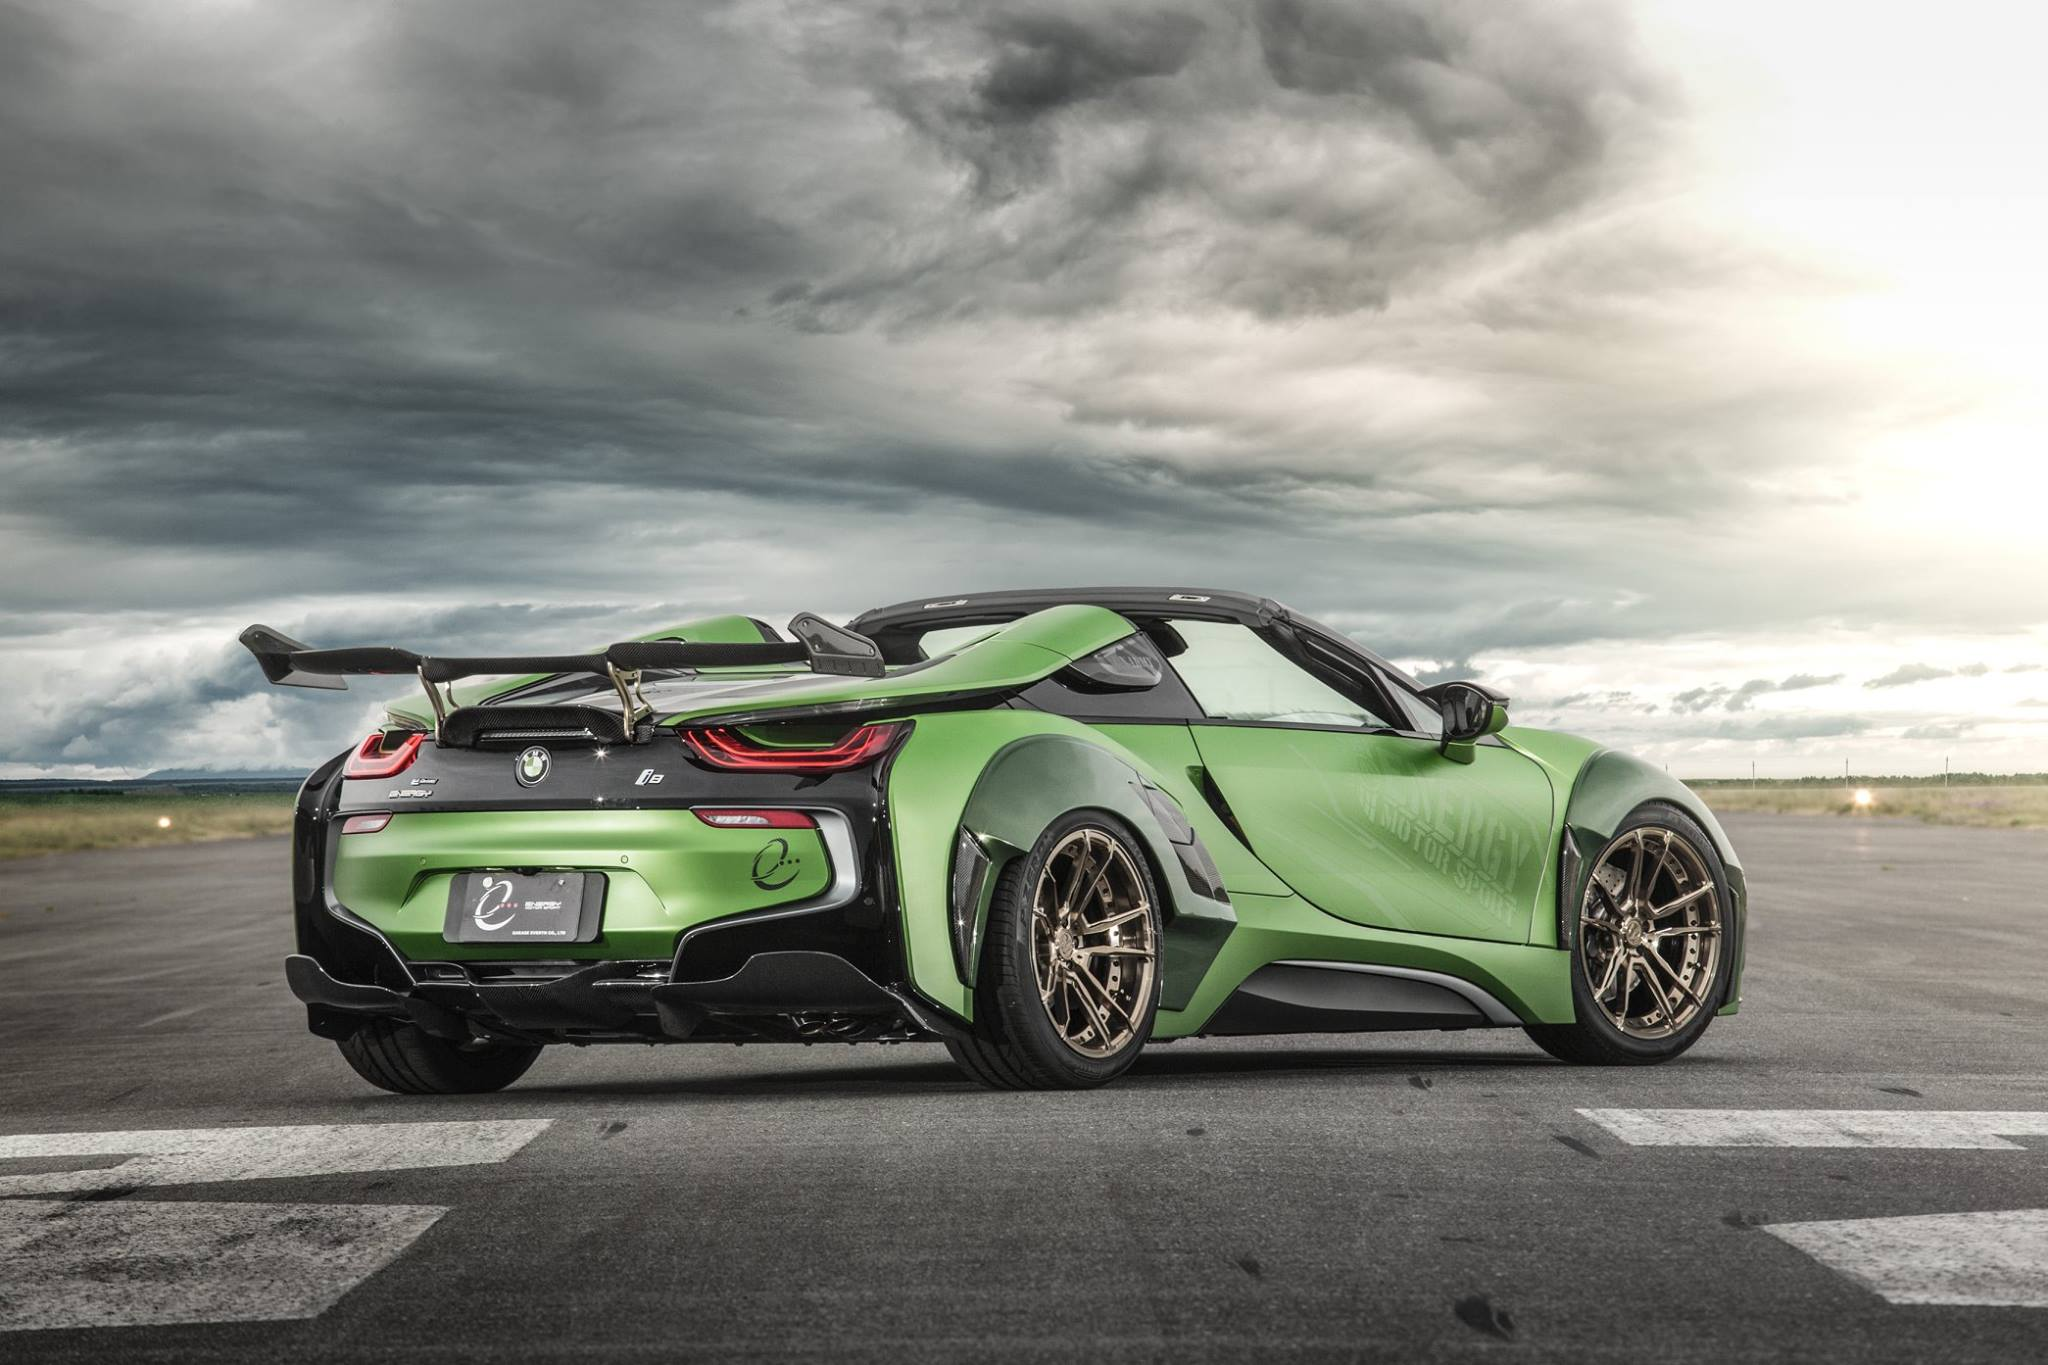 BMW-i8-Roadster-Army-Edition-by-EVE.RYN-5